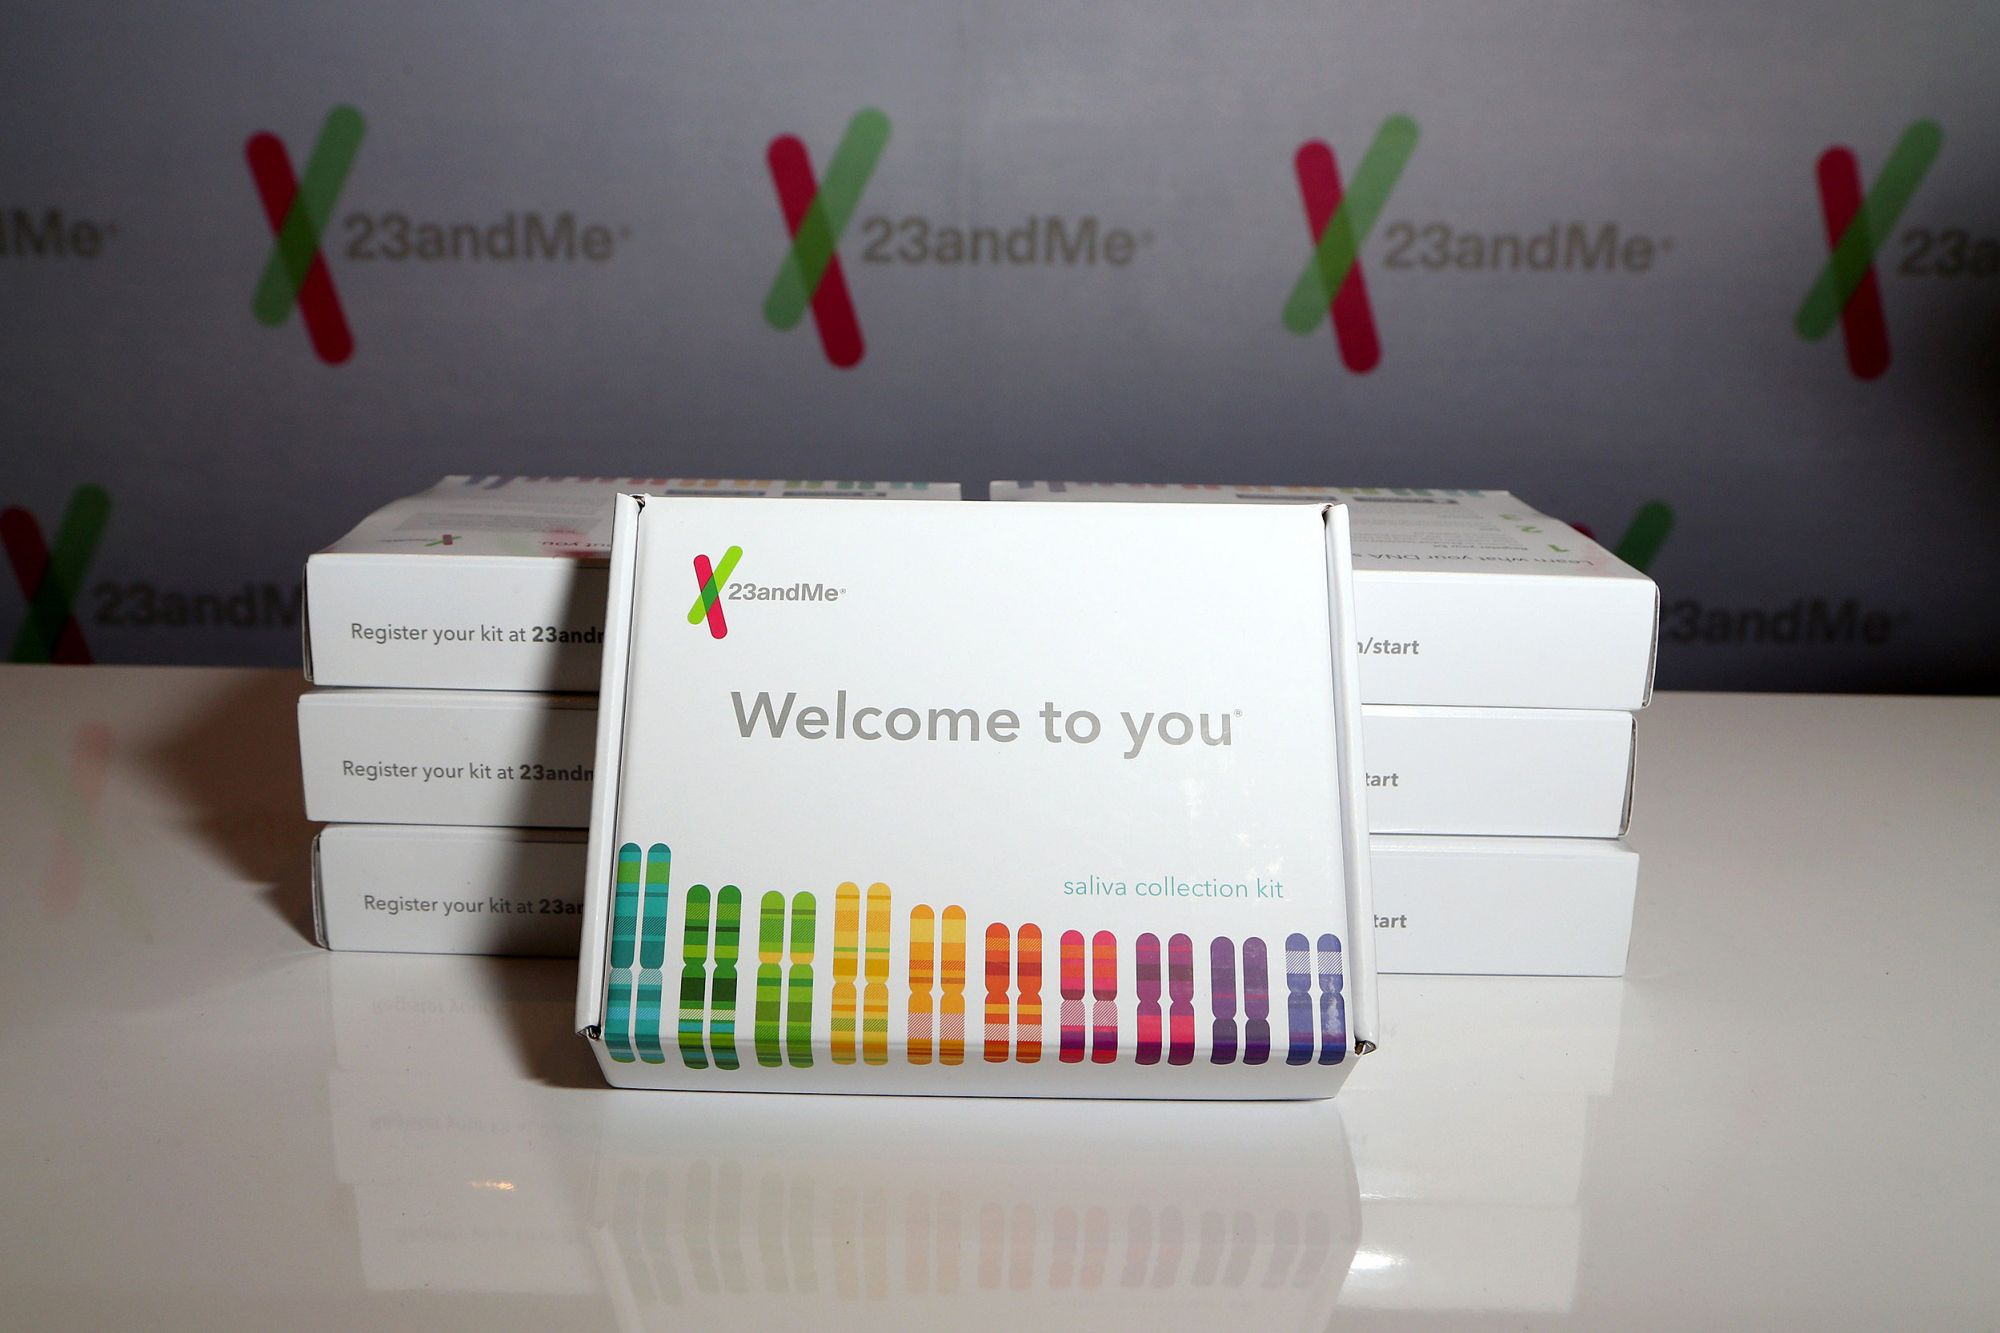 23andMe Lays Off 100 Workers Amid Shrinking Demand for DNA Tests